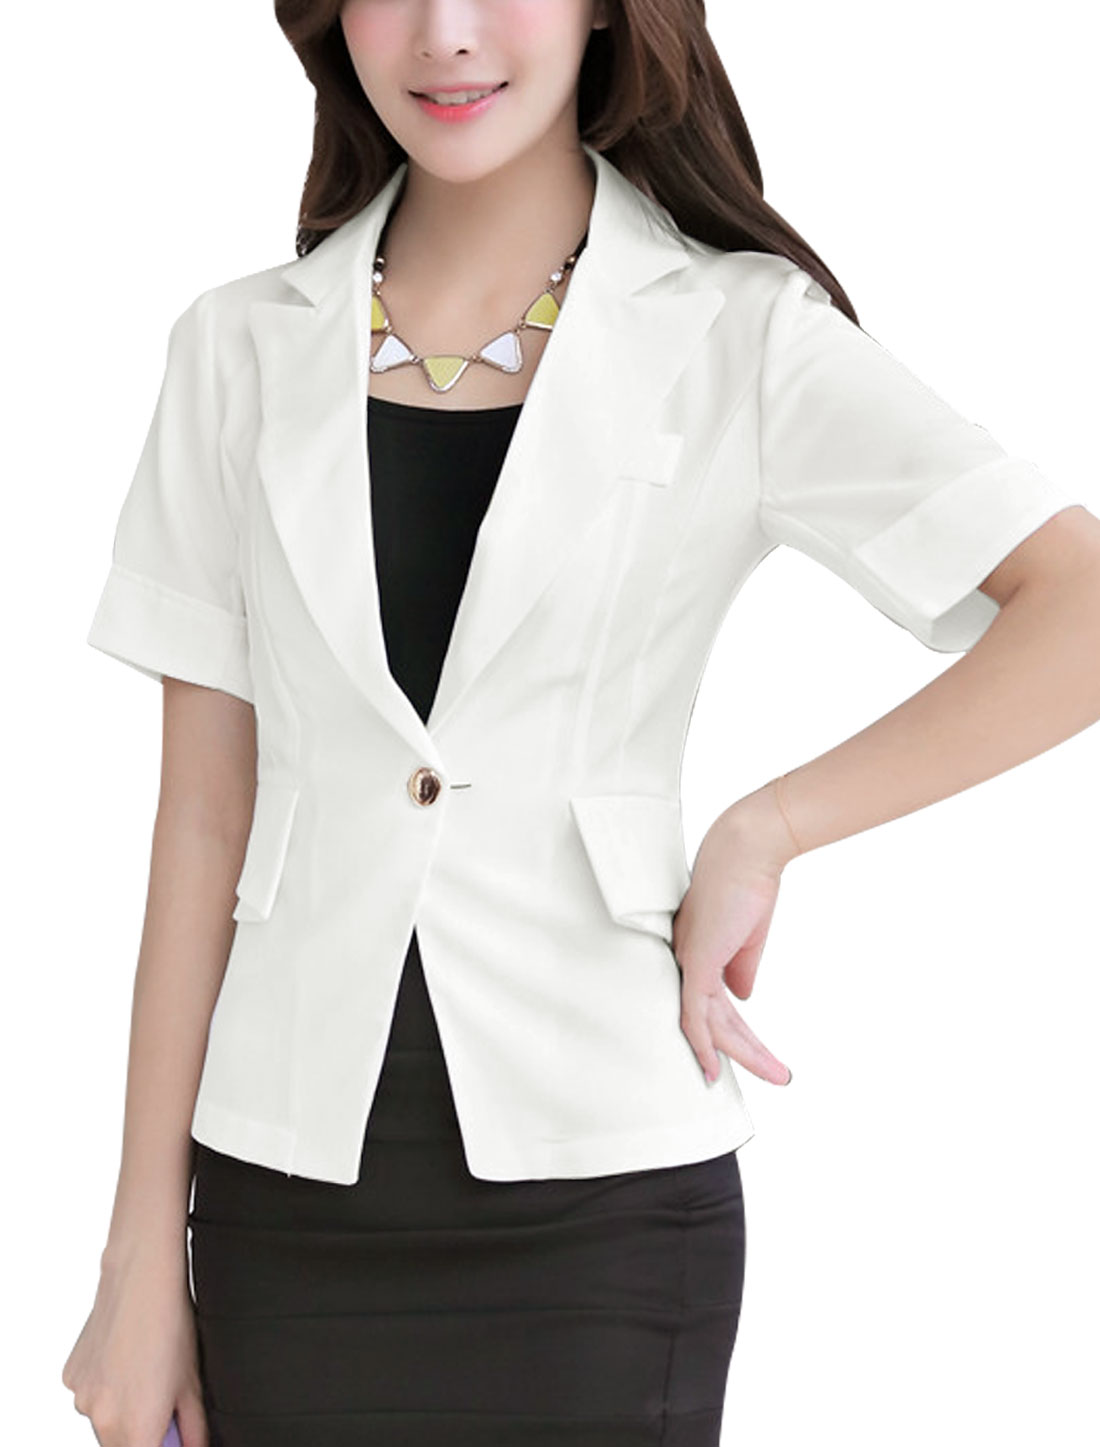 Lady Short Sleeve Button Closure Mock Pockets Blazer Jacket White M